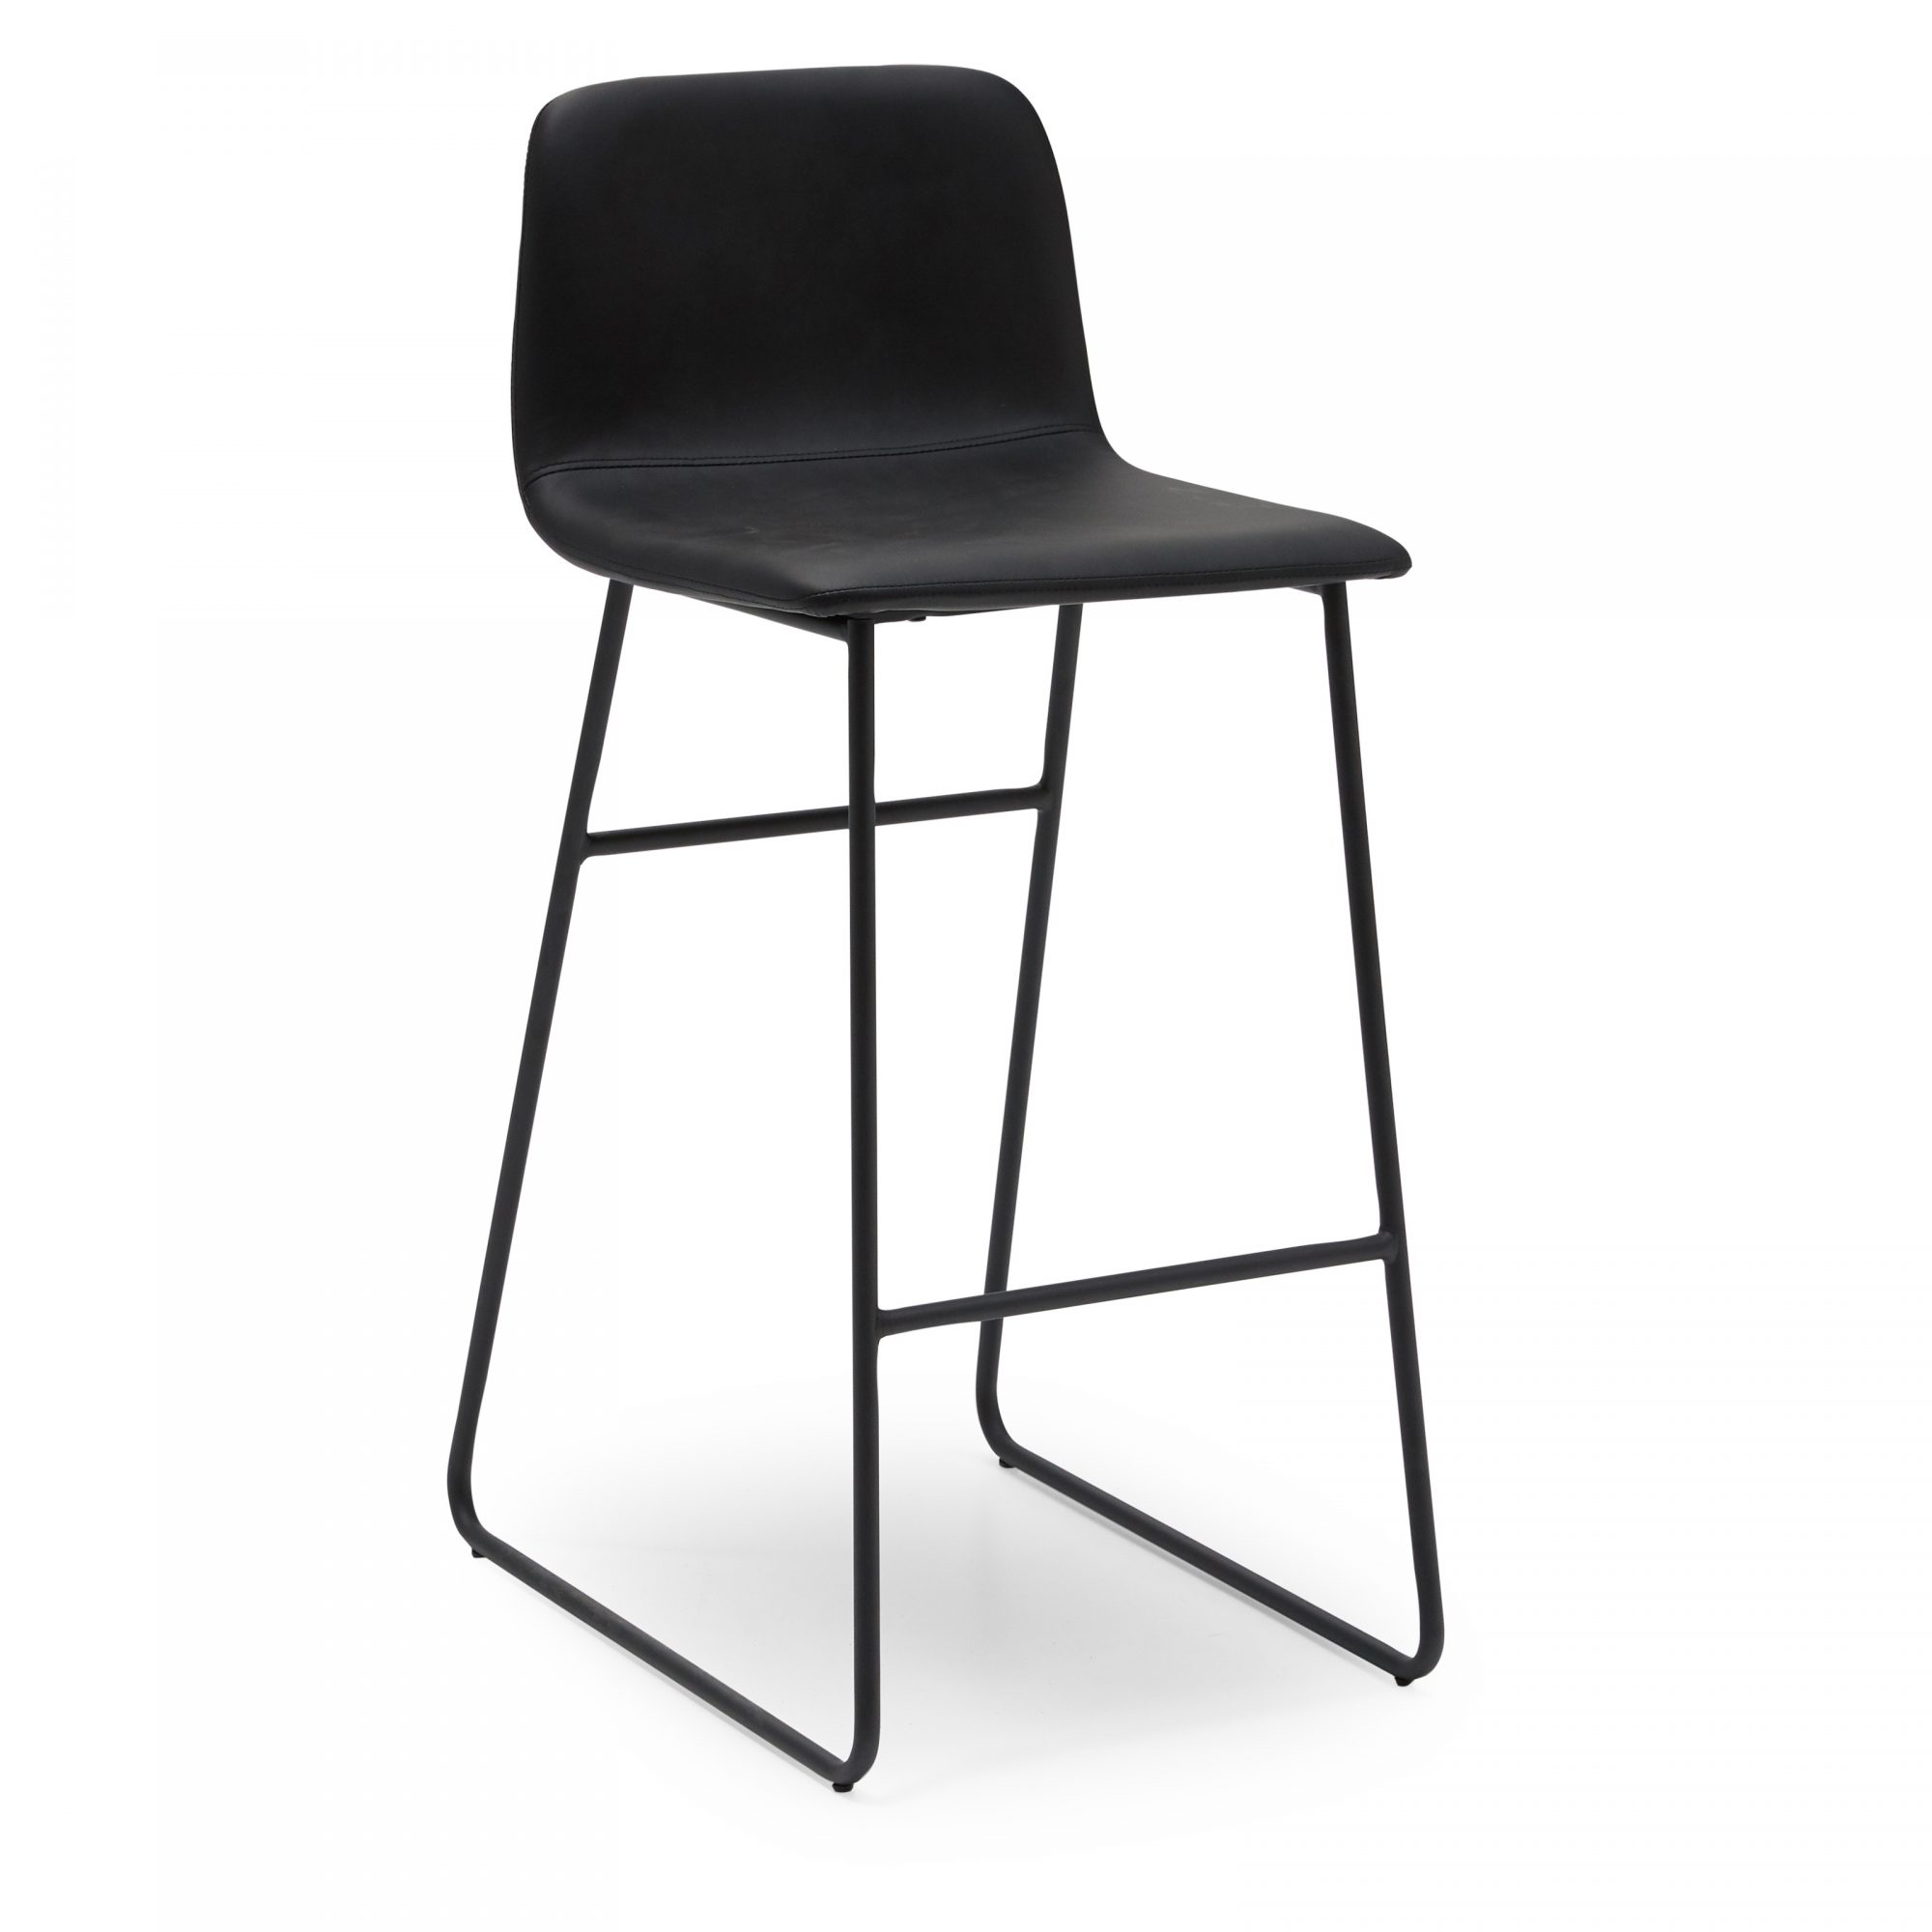 Walmart New Home Collection: MoDRN Industrial Dax Bar Stool